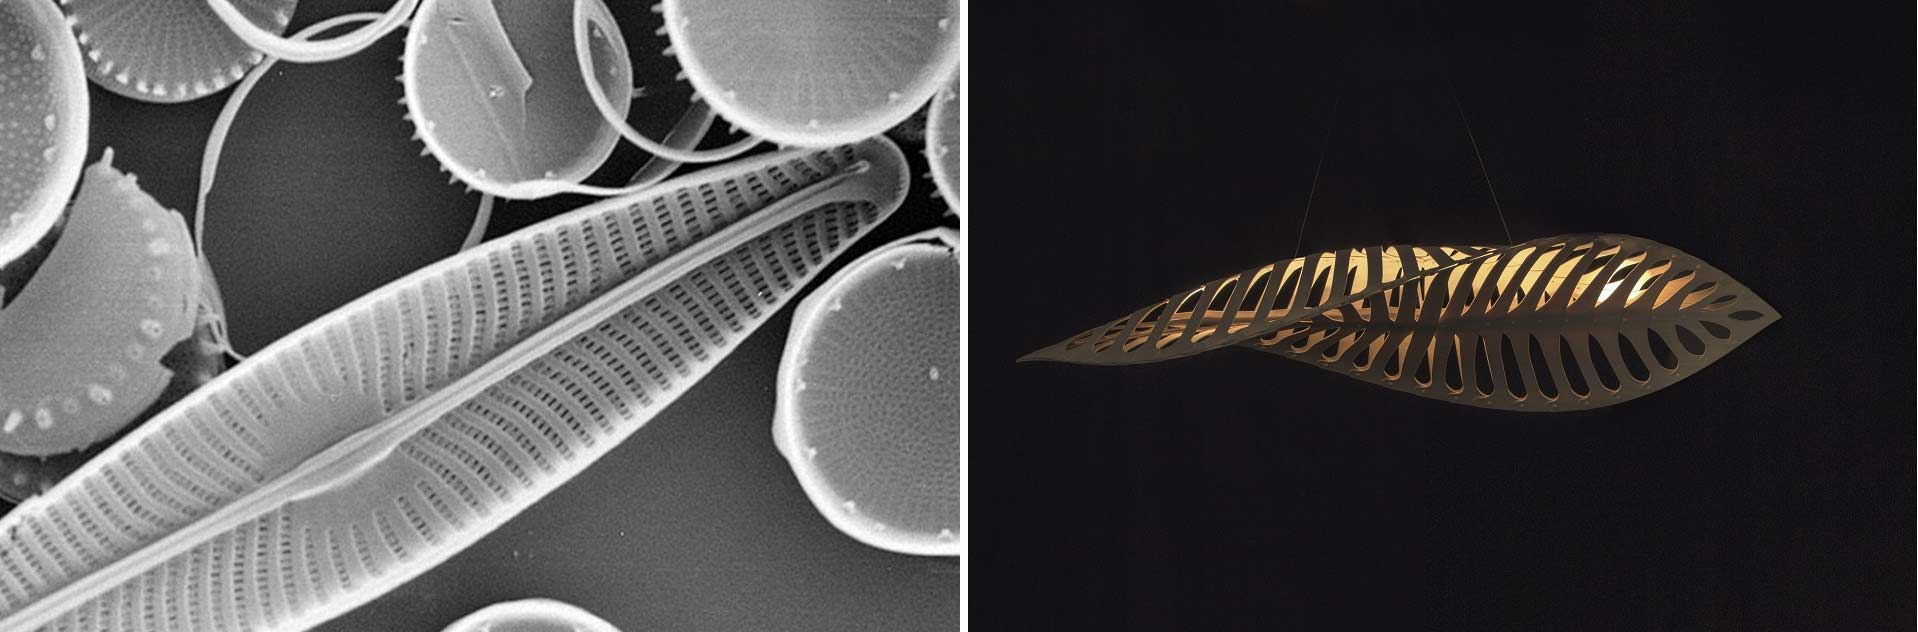 Navicula-and-Diatoms1